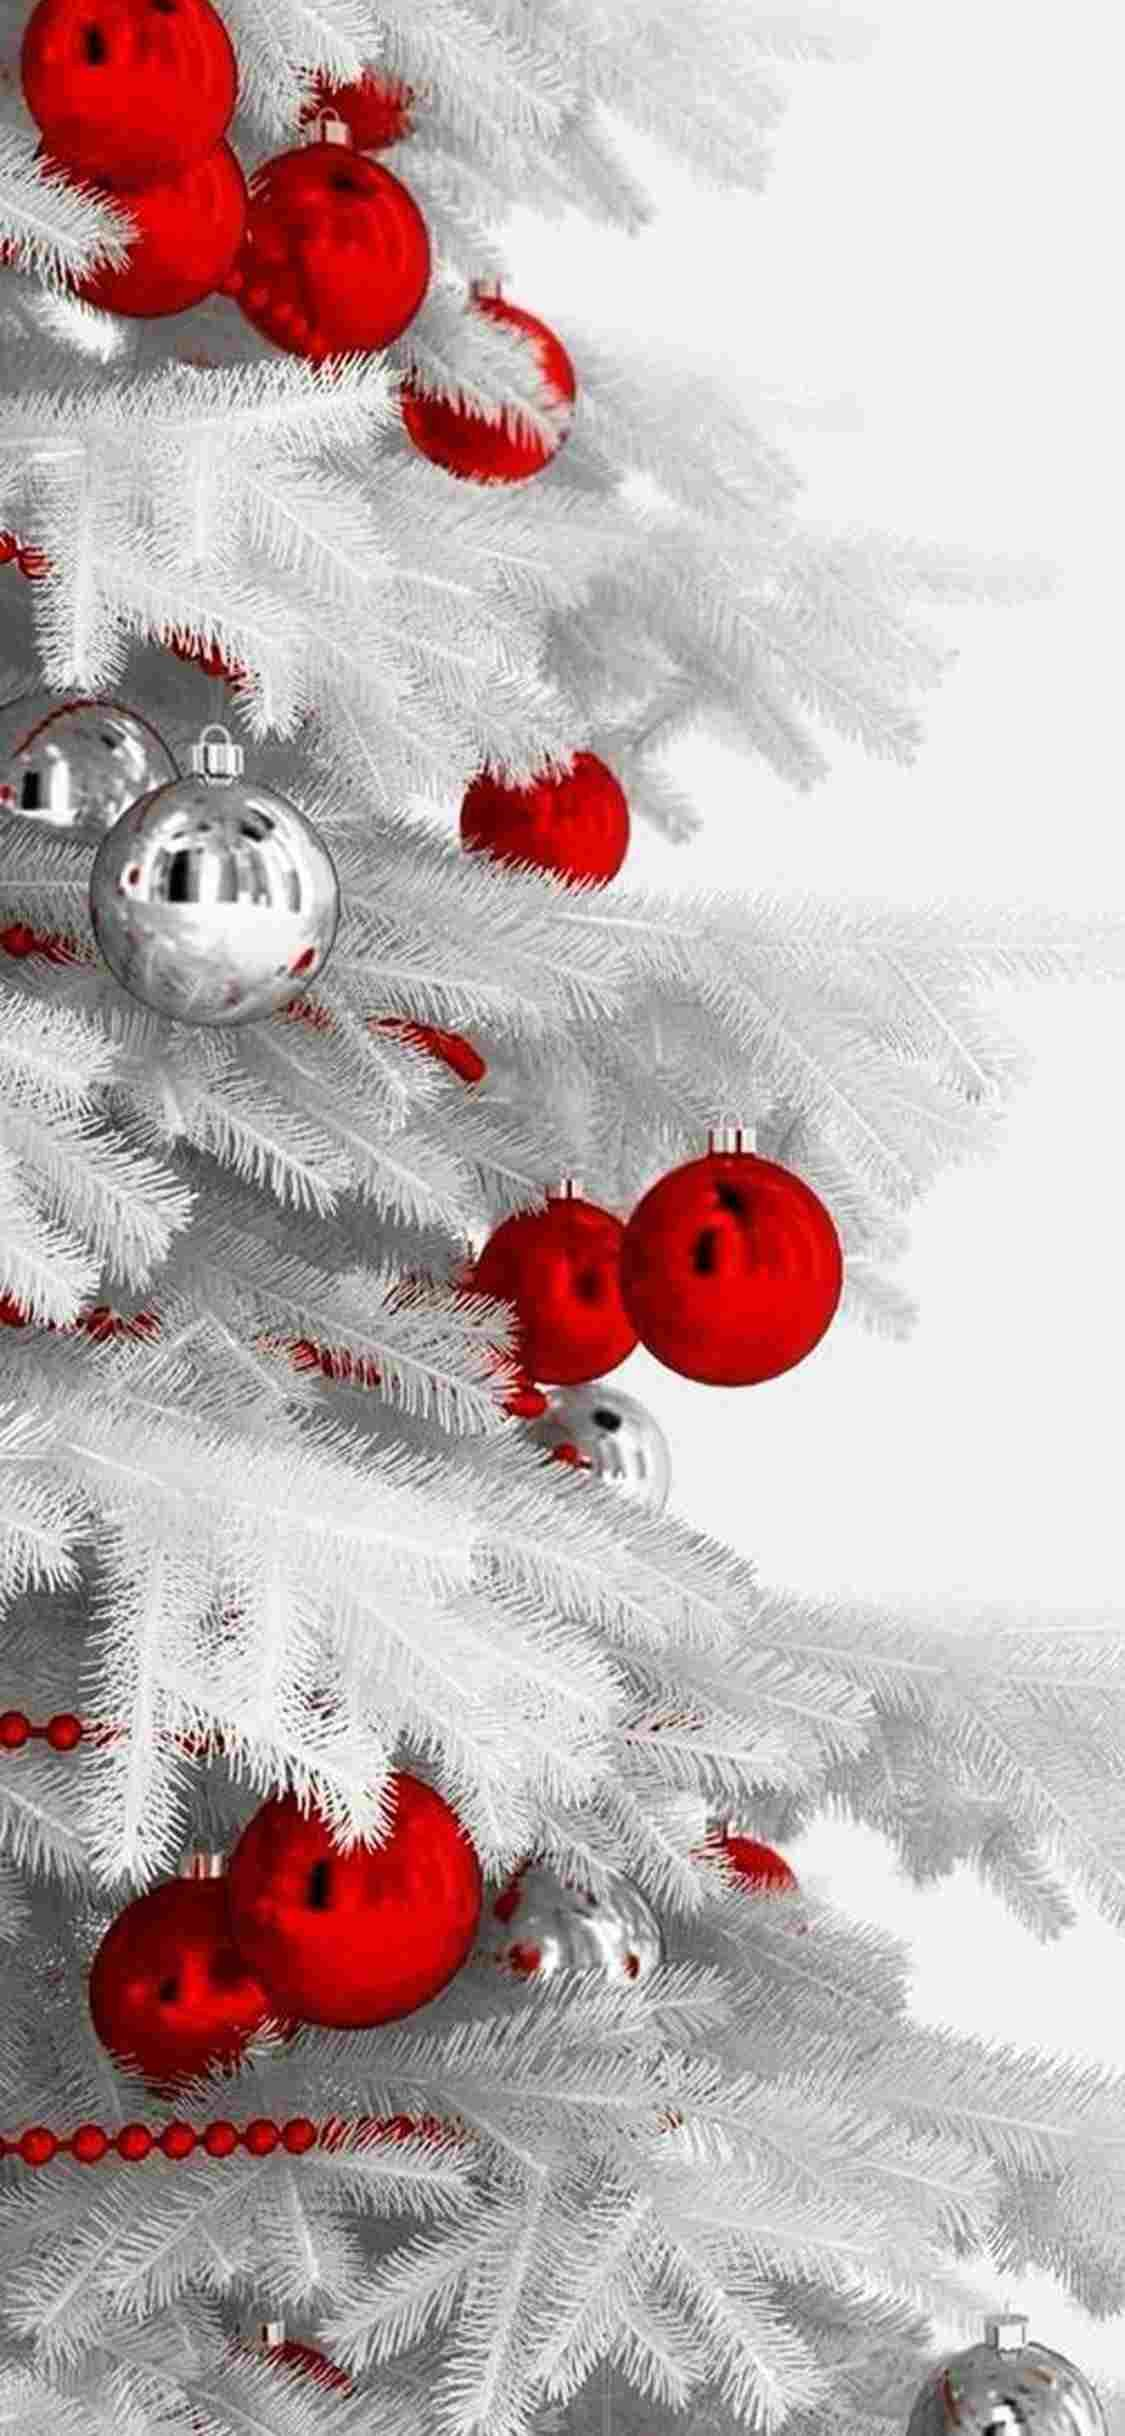 Iphone X Beautiful Wallpaper 1125 2436 Christmas Background Funmary Wallpaper Iphone Christmas Christmas Tree Wallpaper Christmas Wallpaper